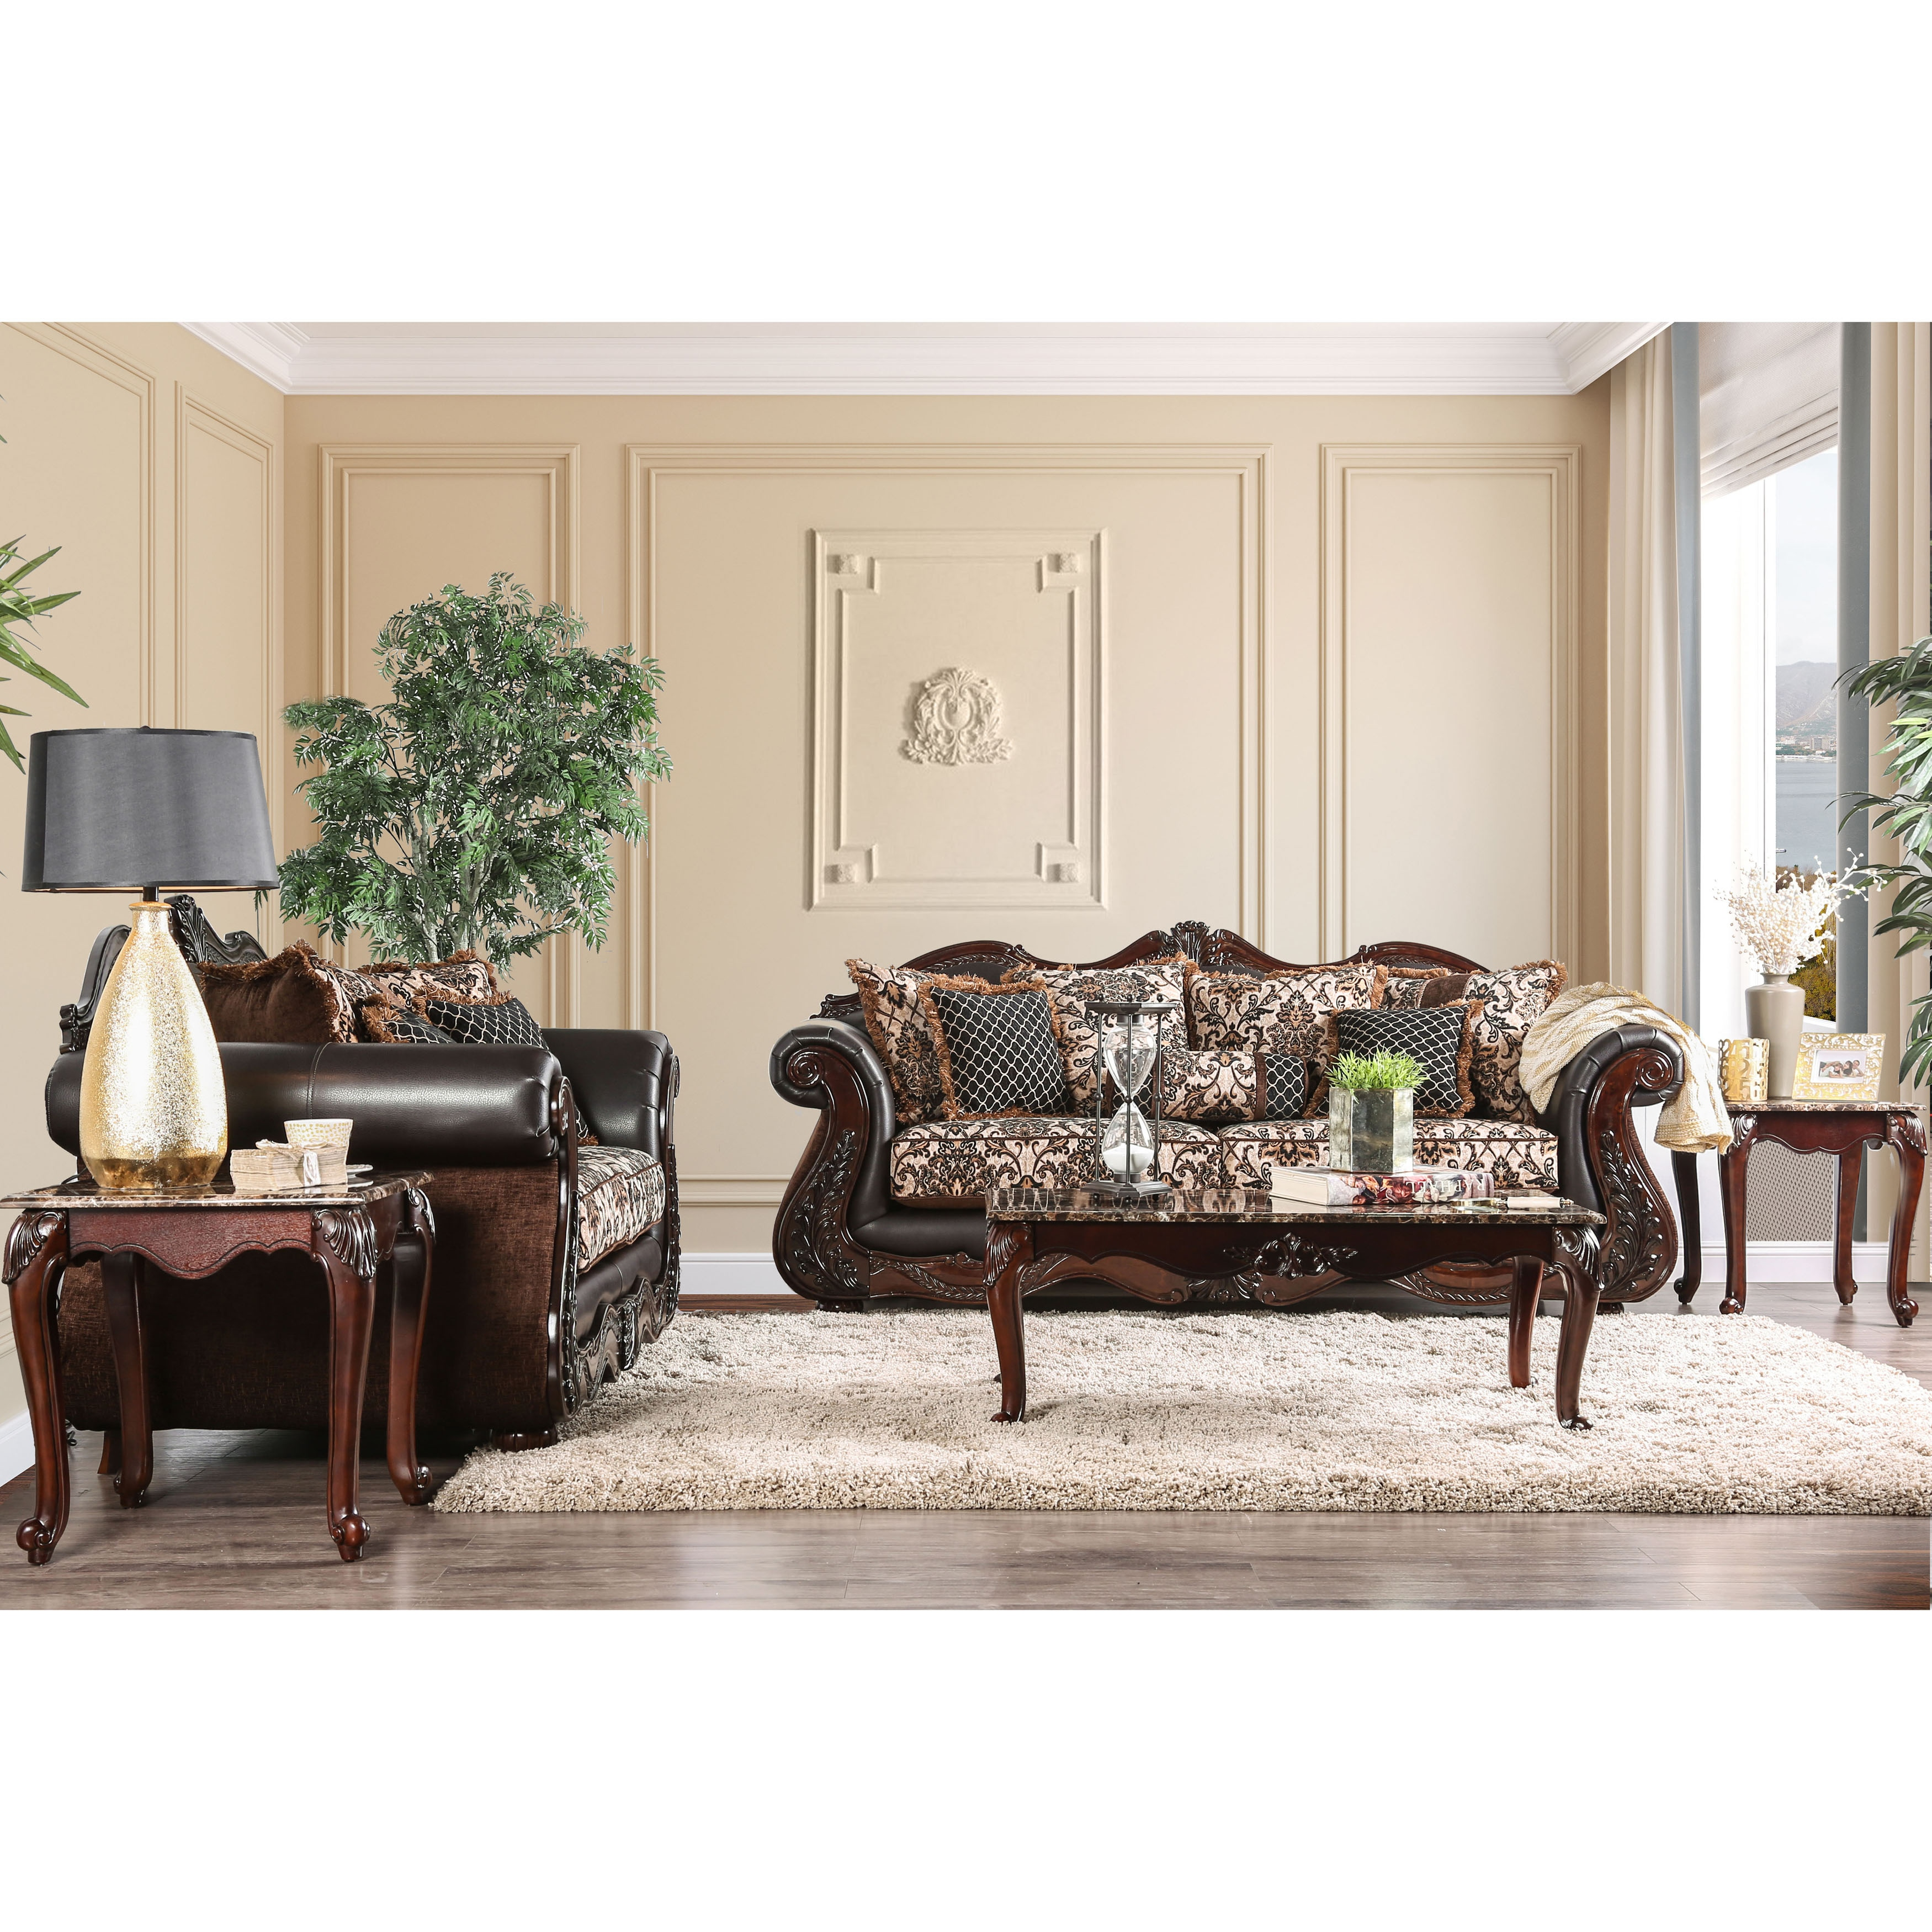 Furniture of America Delane Traditional Chenille Fabric and Faux ...